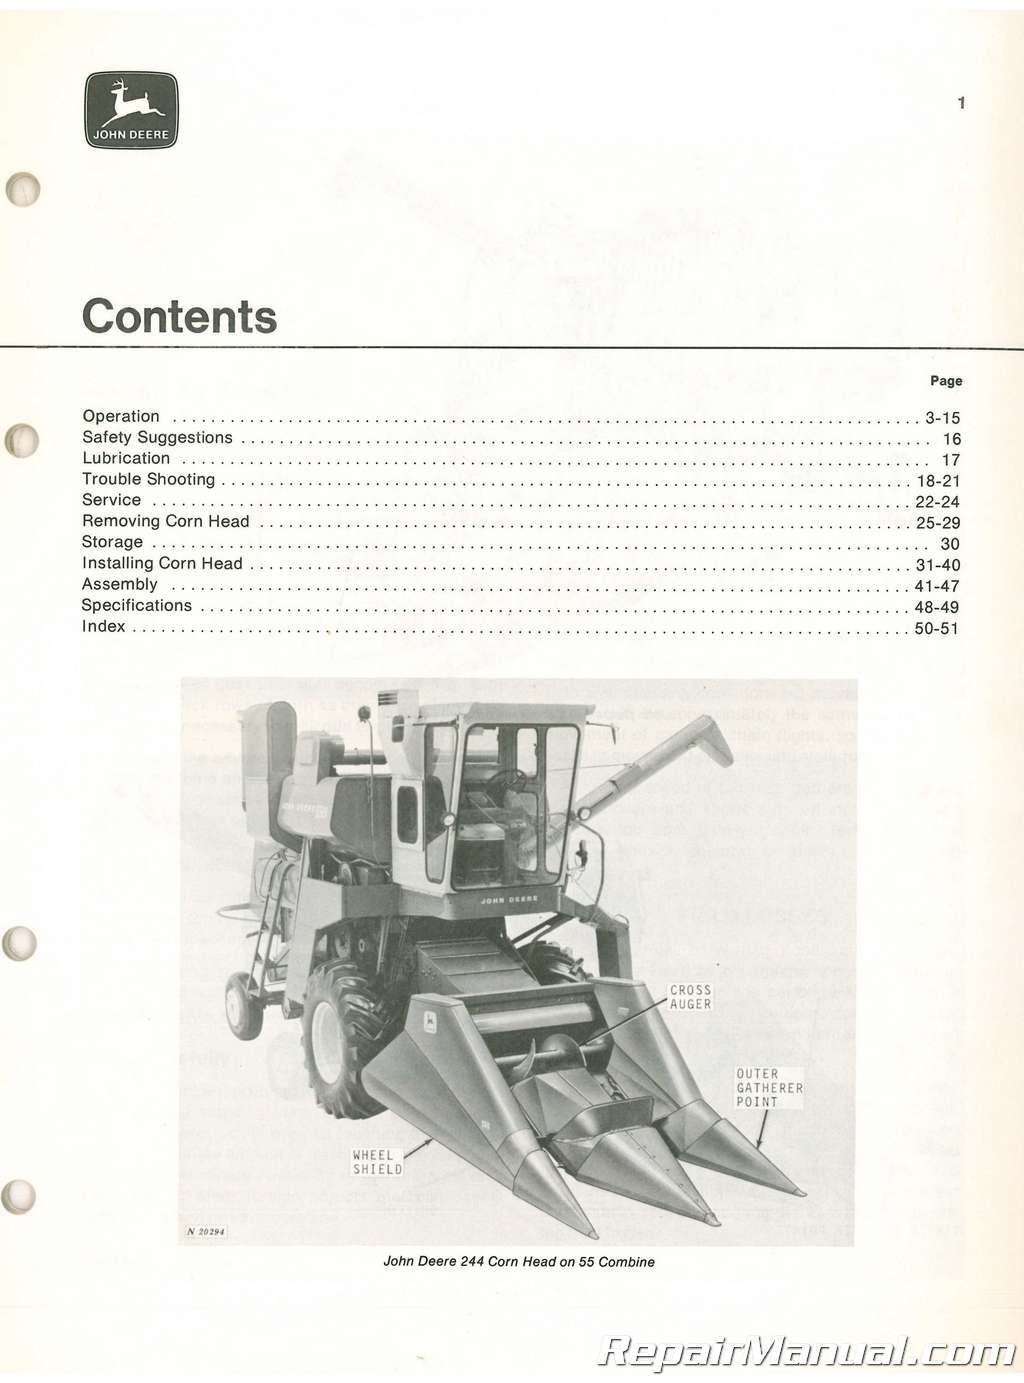 John Deere 244 and 343 Corn Heads Operators Manual